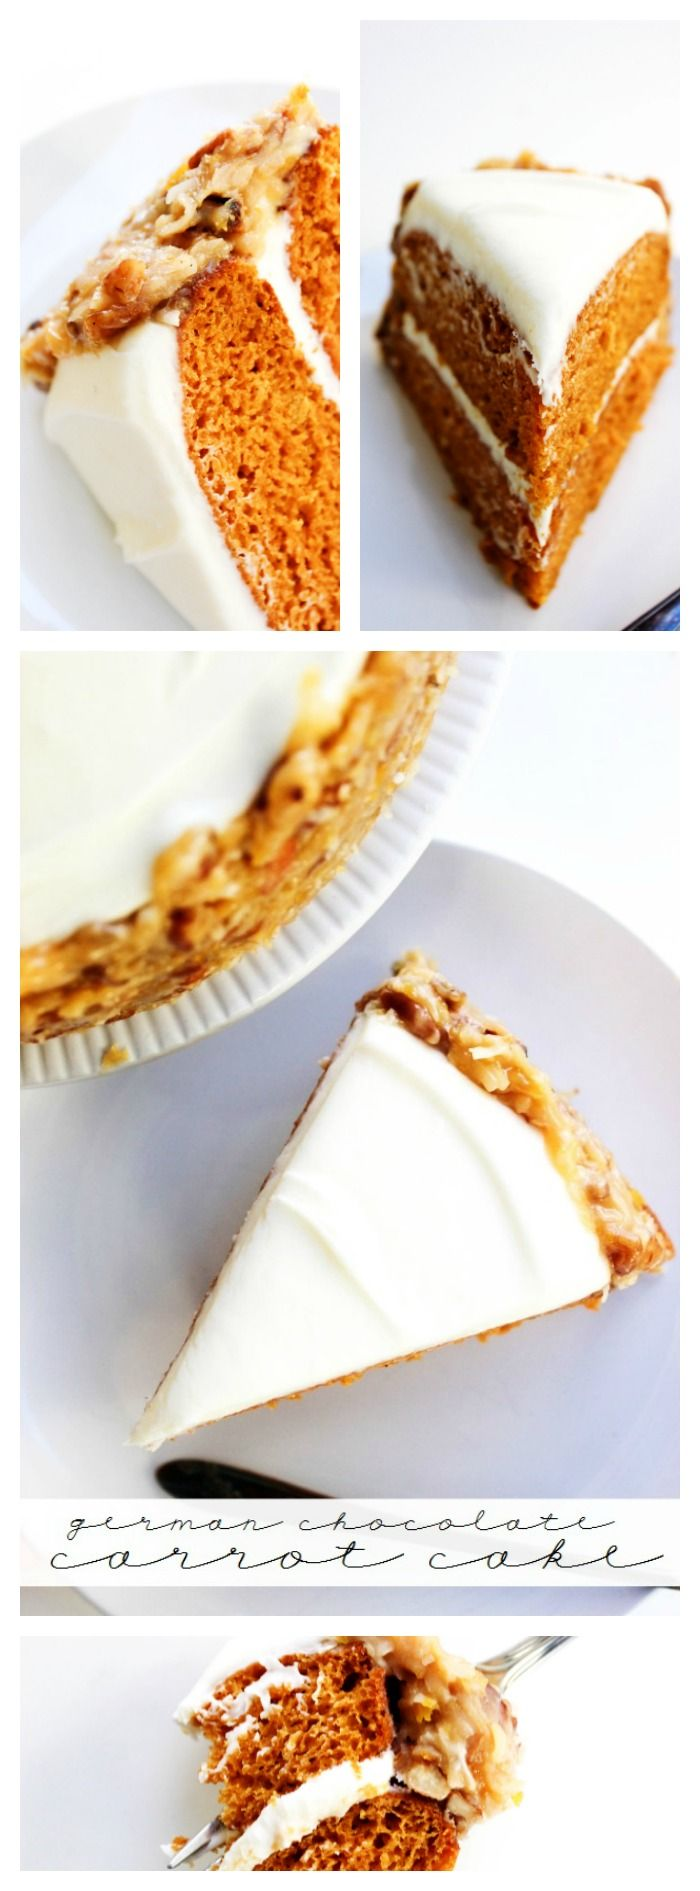 German Chocolate Carrot Cake - layers of cream cheese frosting & pumpkin cake with German Chocolate Cake frosting.